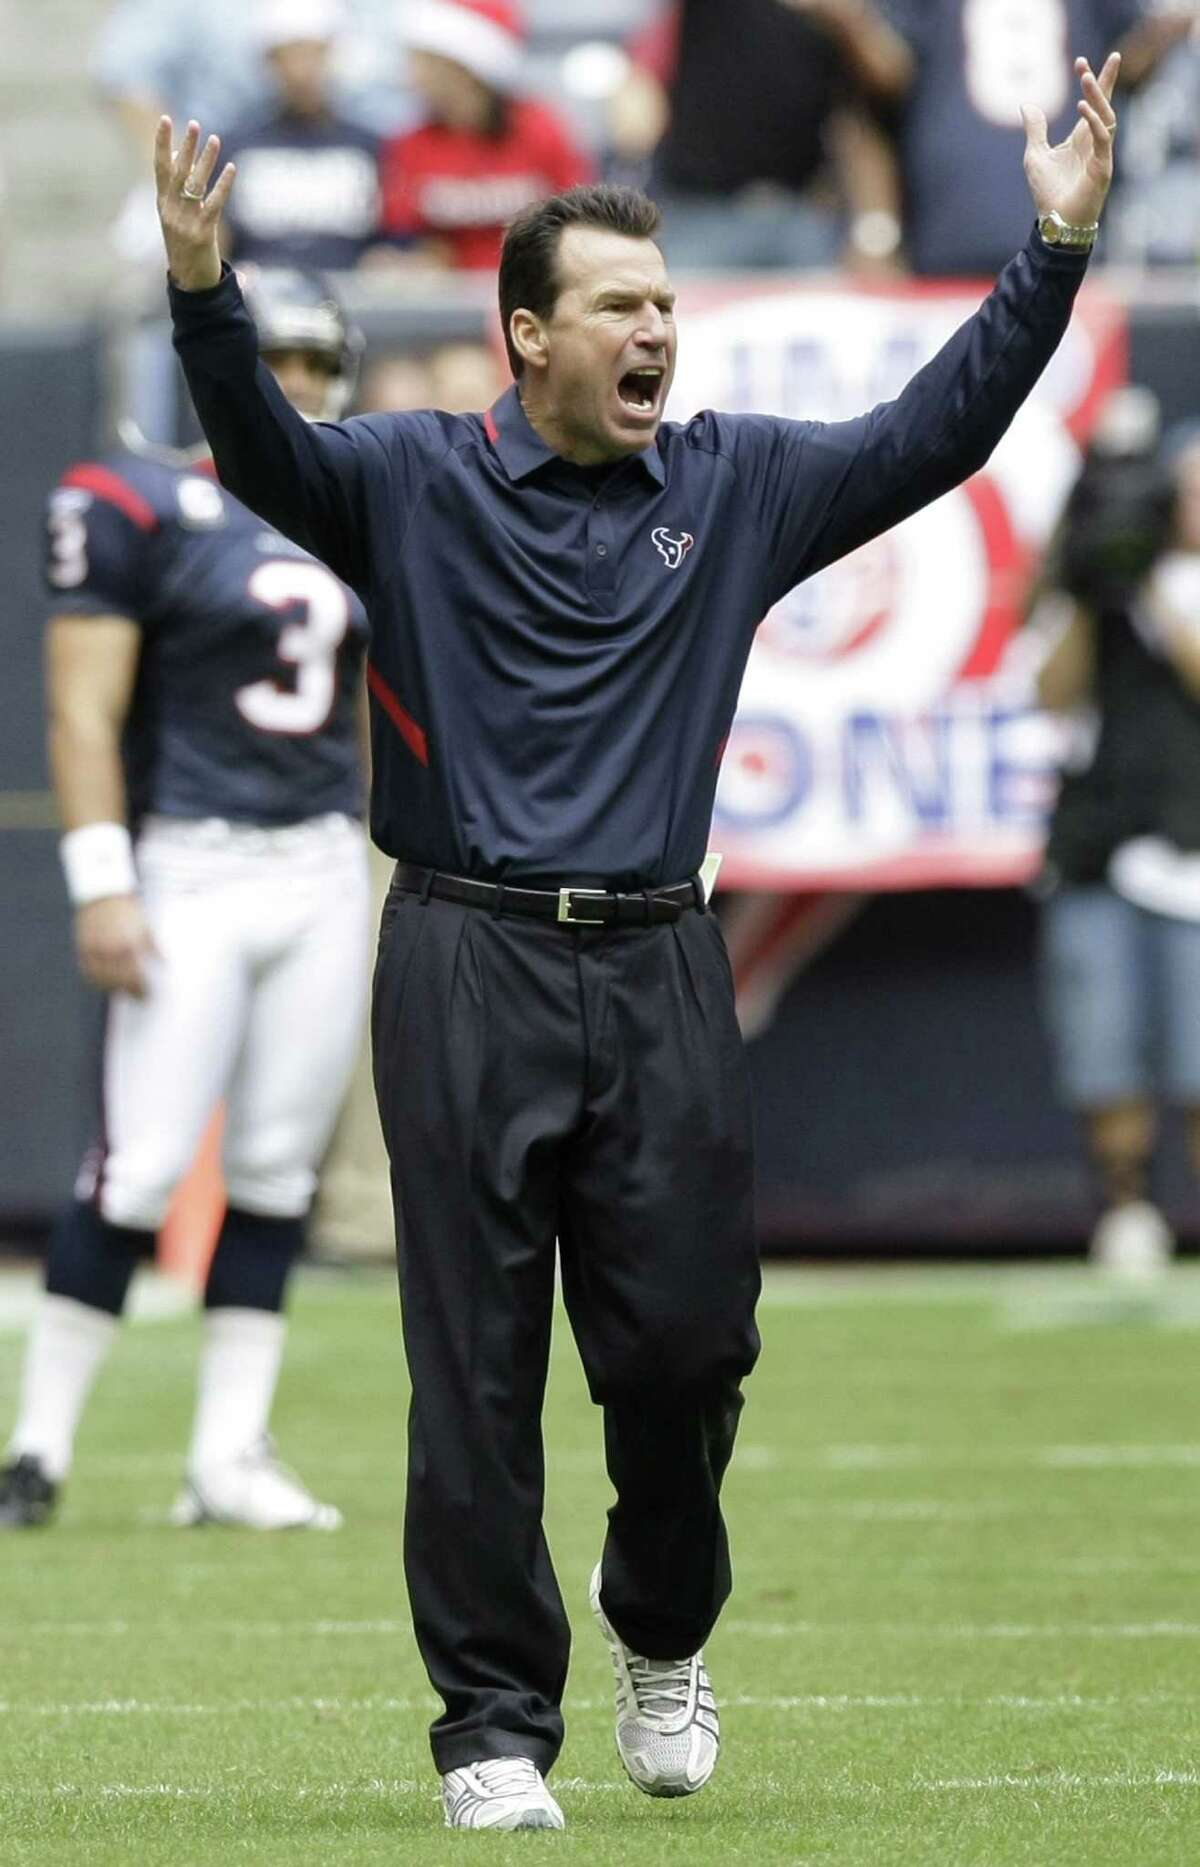 Sept. 10, 2006 - Texans lost his first game at Philadelphia 24-10 as defense surrendered 441 yards.